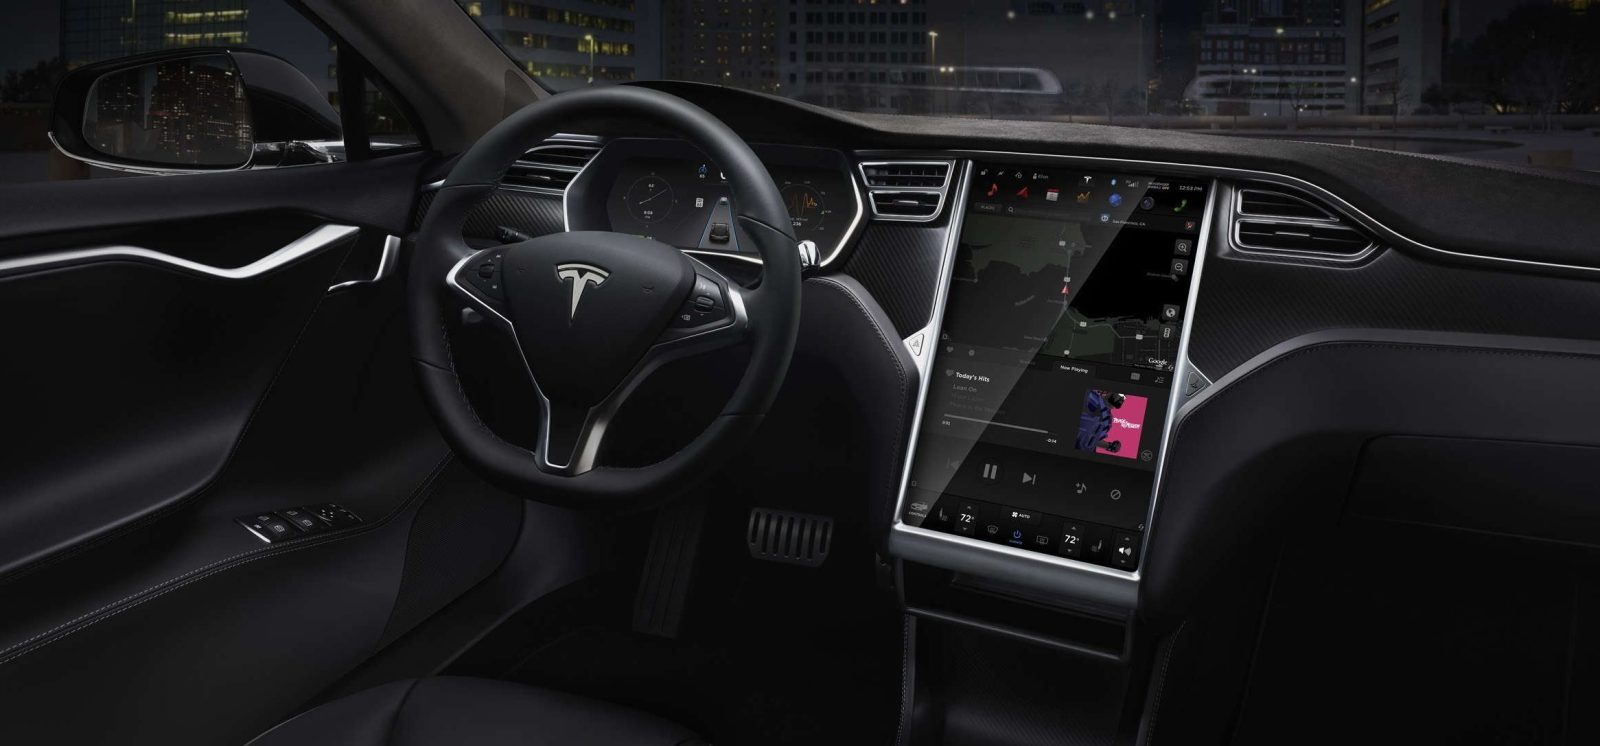 Tesla is updating its maps and navigation with open source